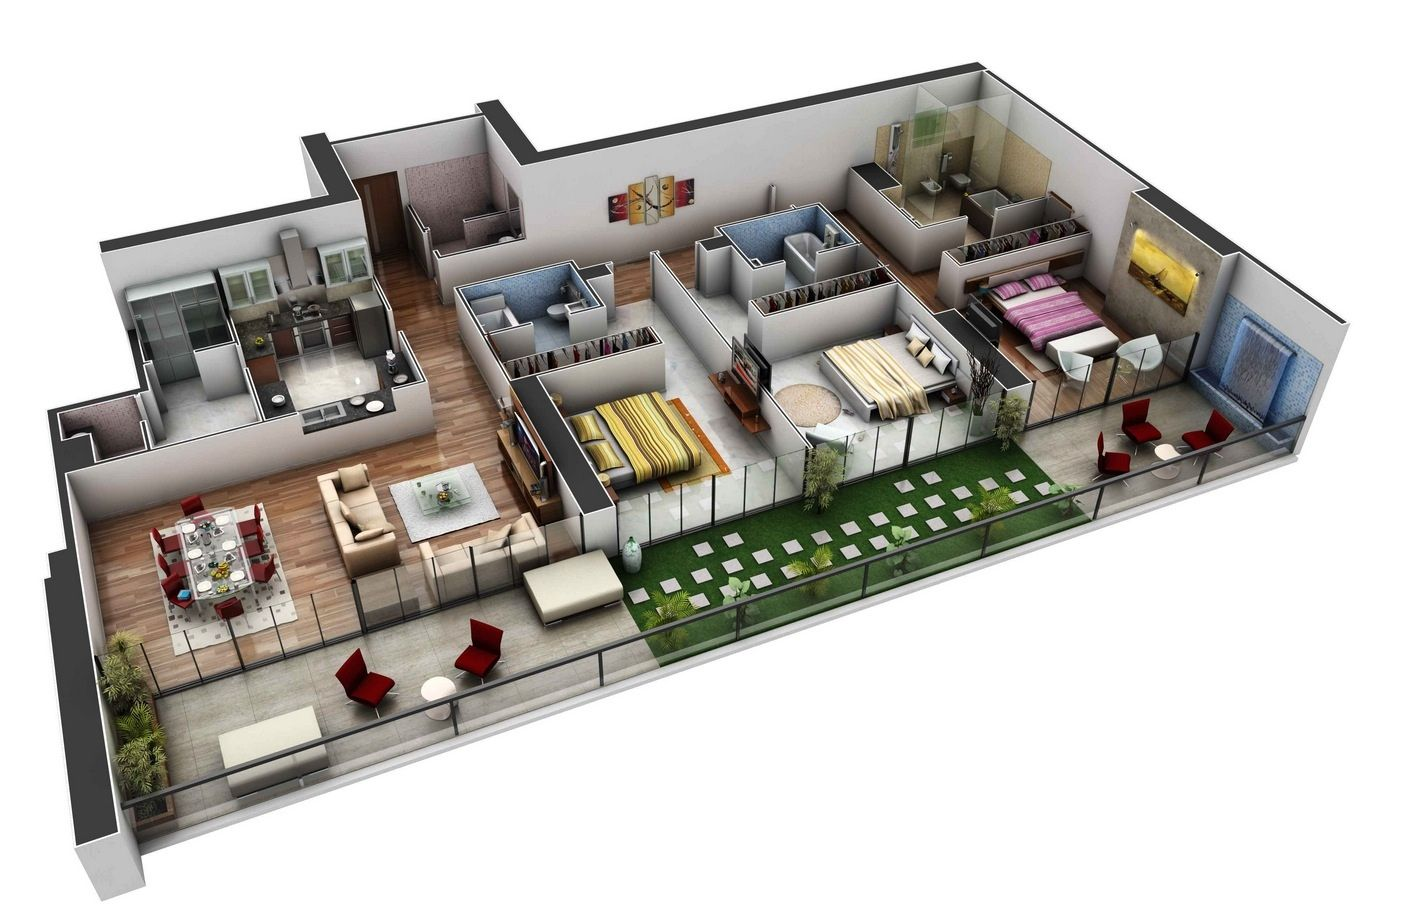 50 Three 3 Bedroom Apartment House Plans Architecture Design Three Bedroom House Plan 3d House Plans Three Bedroom House